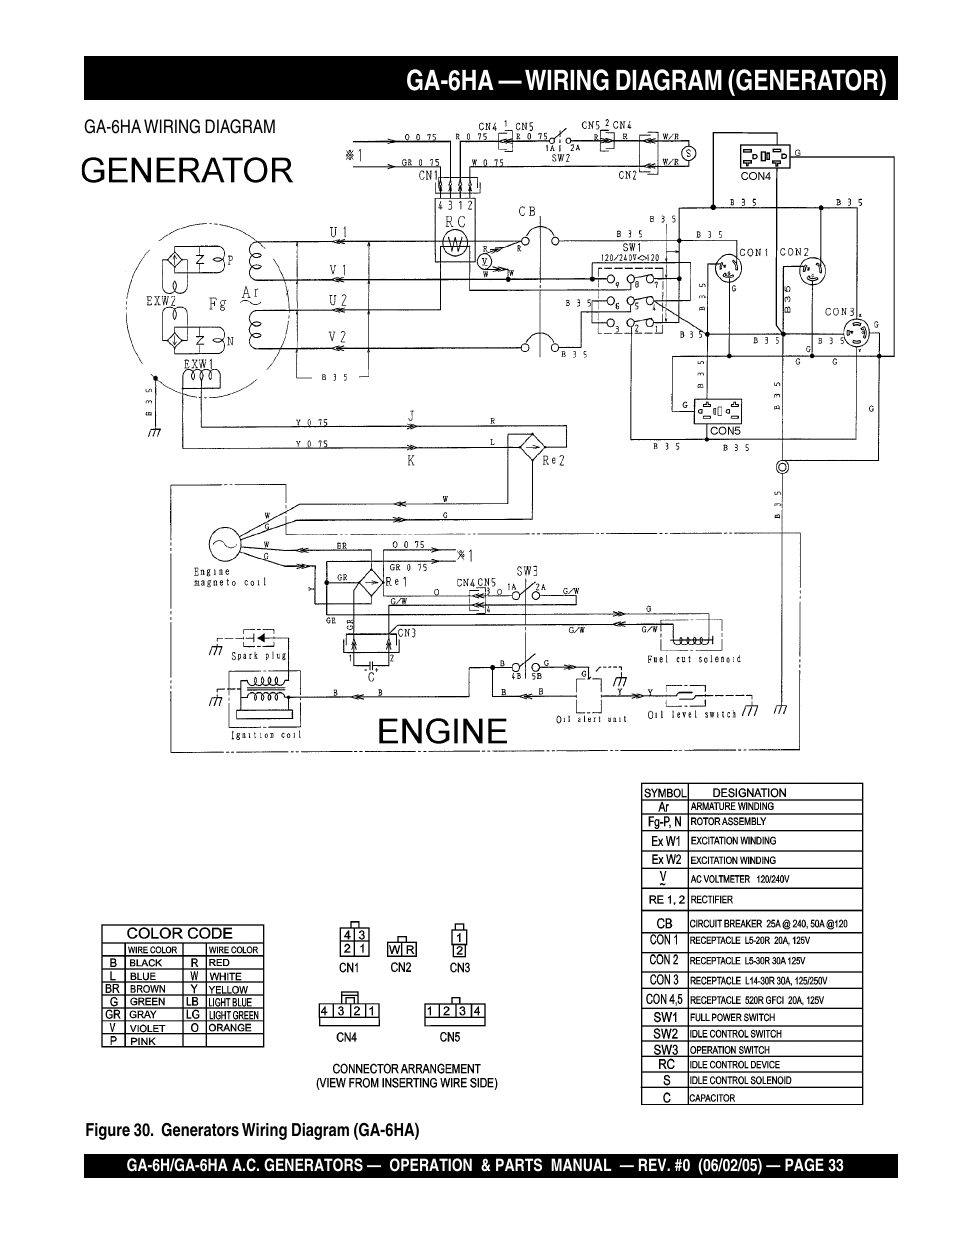 Ga 6ha Wiring Diagram Generator Multiquip Mq Honeywell Portable Generators 6h User Manual Page 33 84